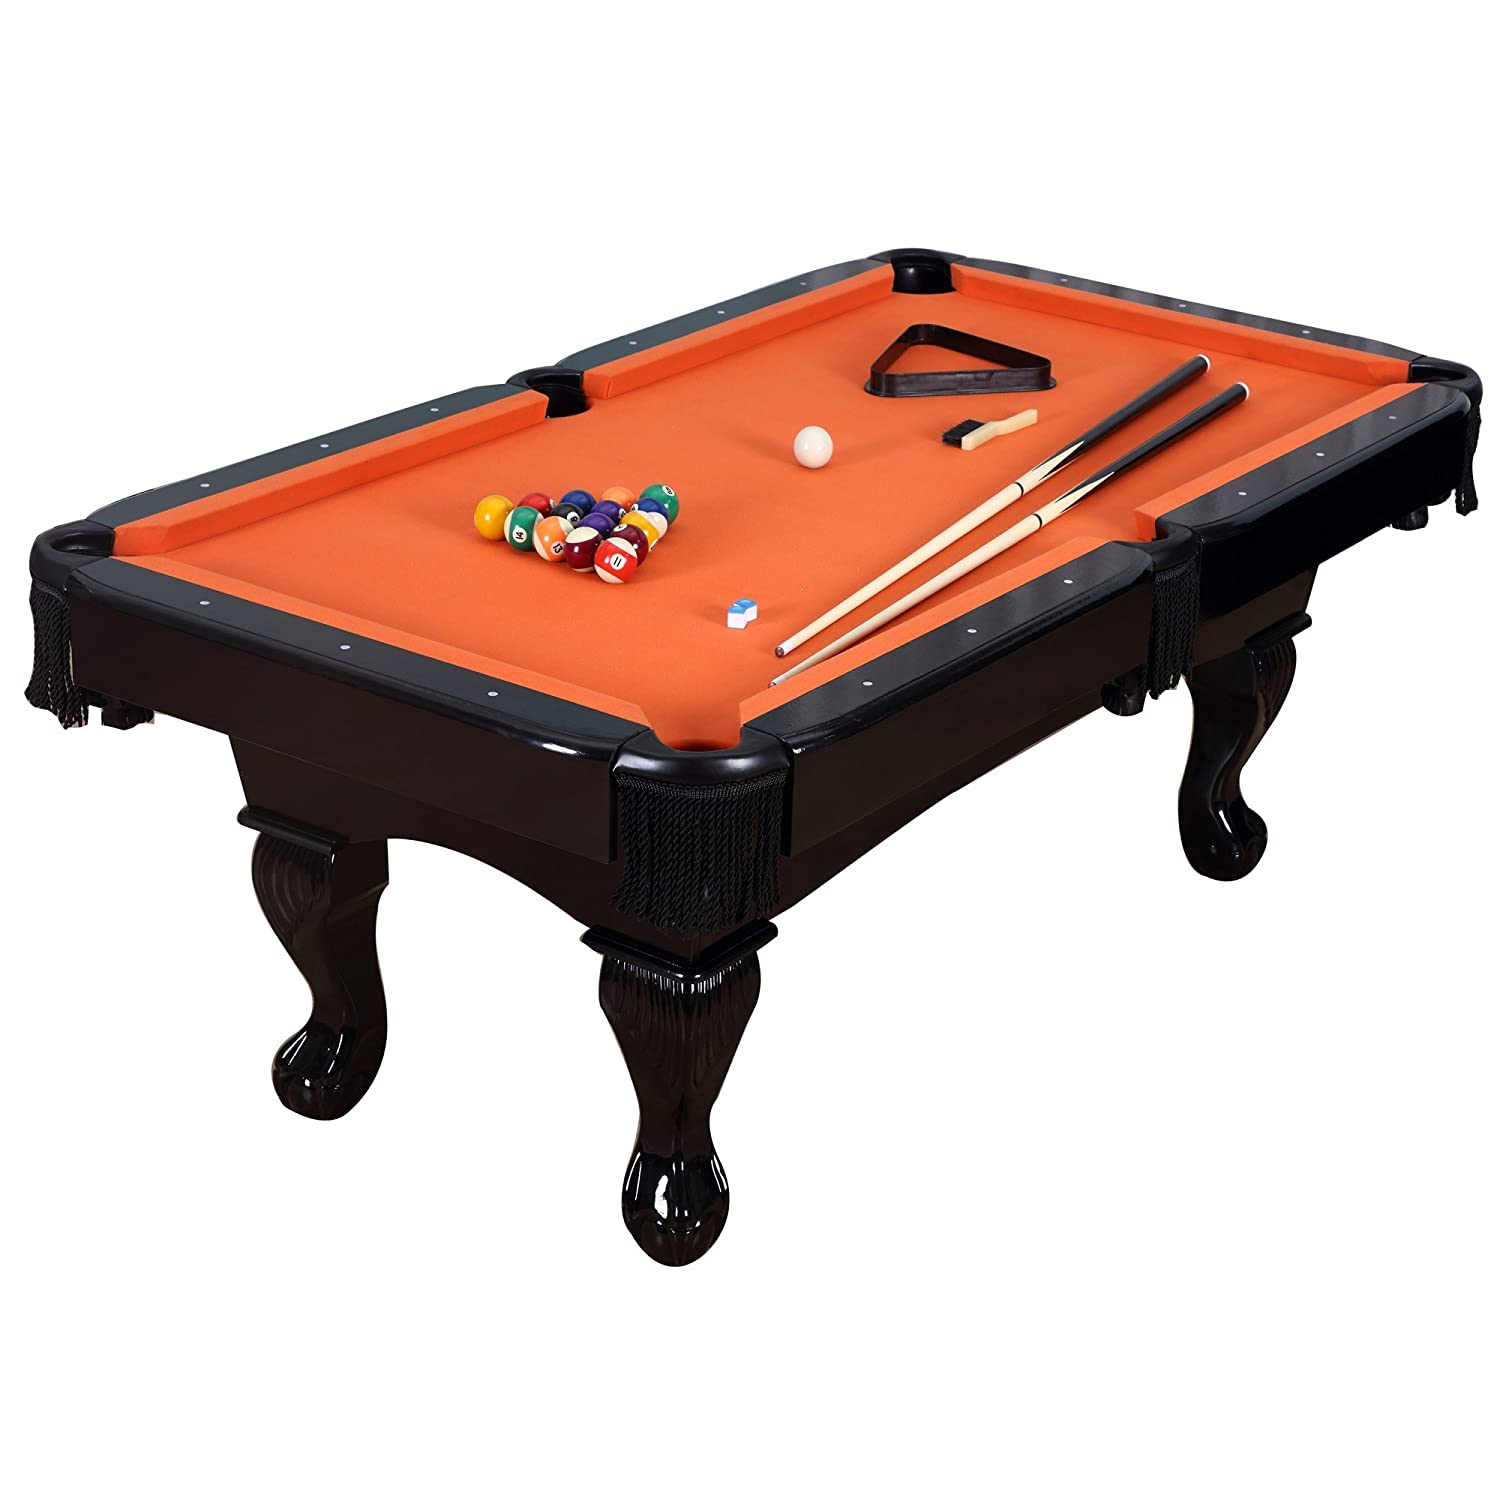 Harvil 84 Inches Black Pool Table With Claw Legs, 2 Pieces 57 Inch Pool